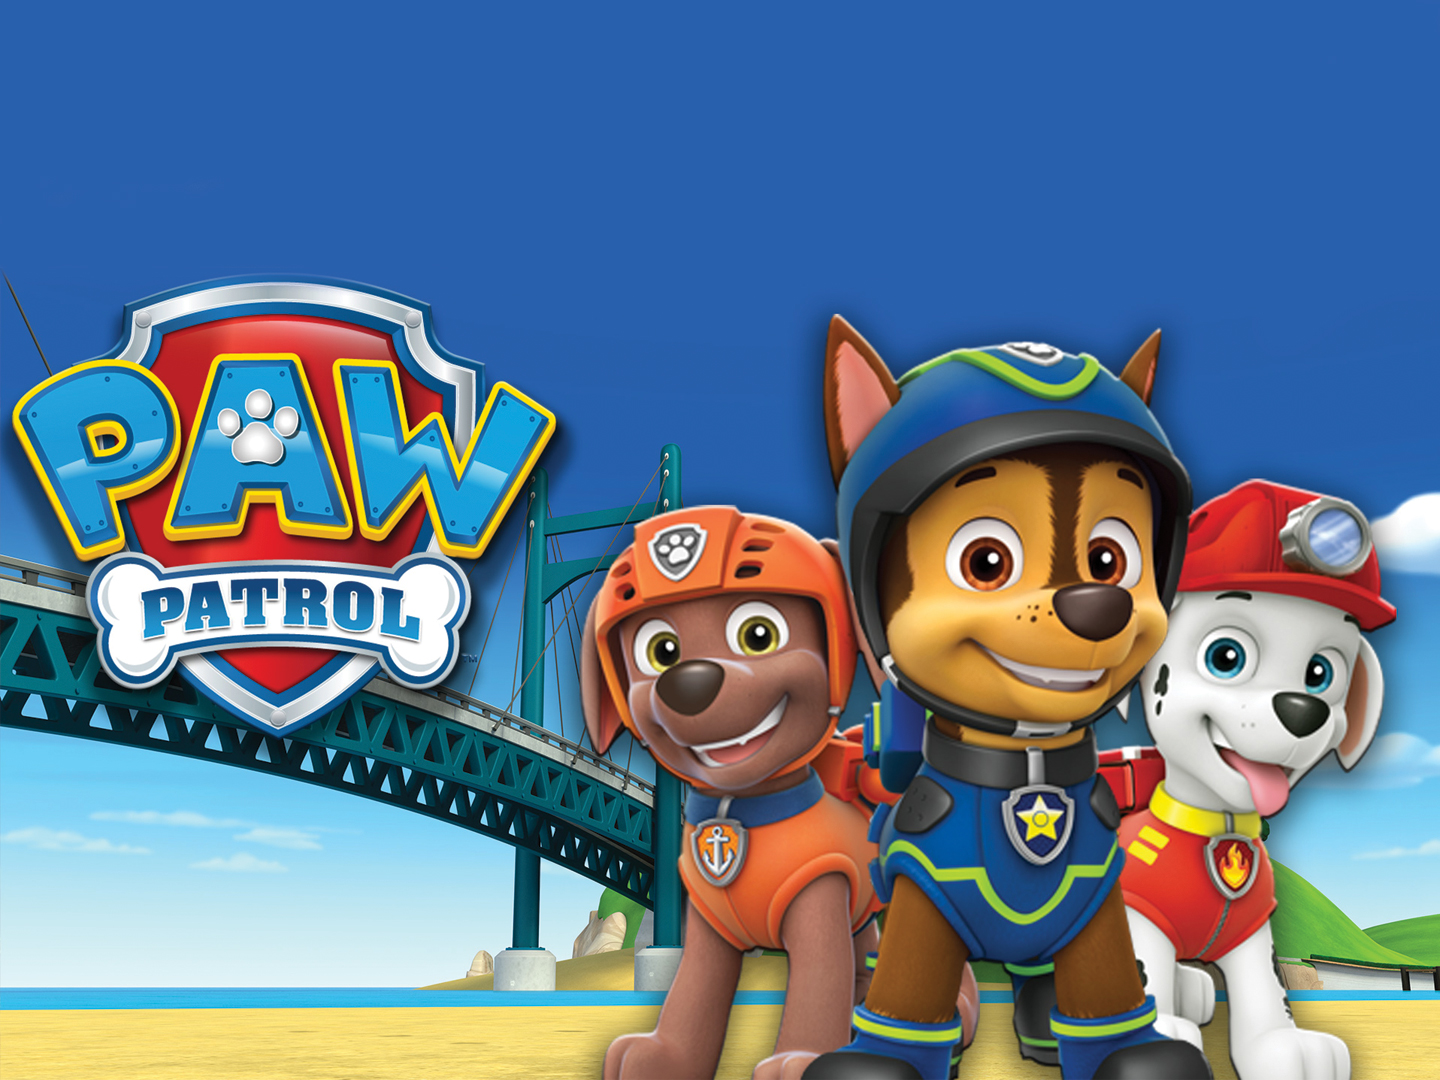 Watch Paw Patrol Online | Season 1 - 4 on Lightbox